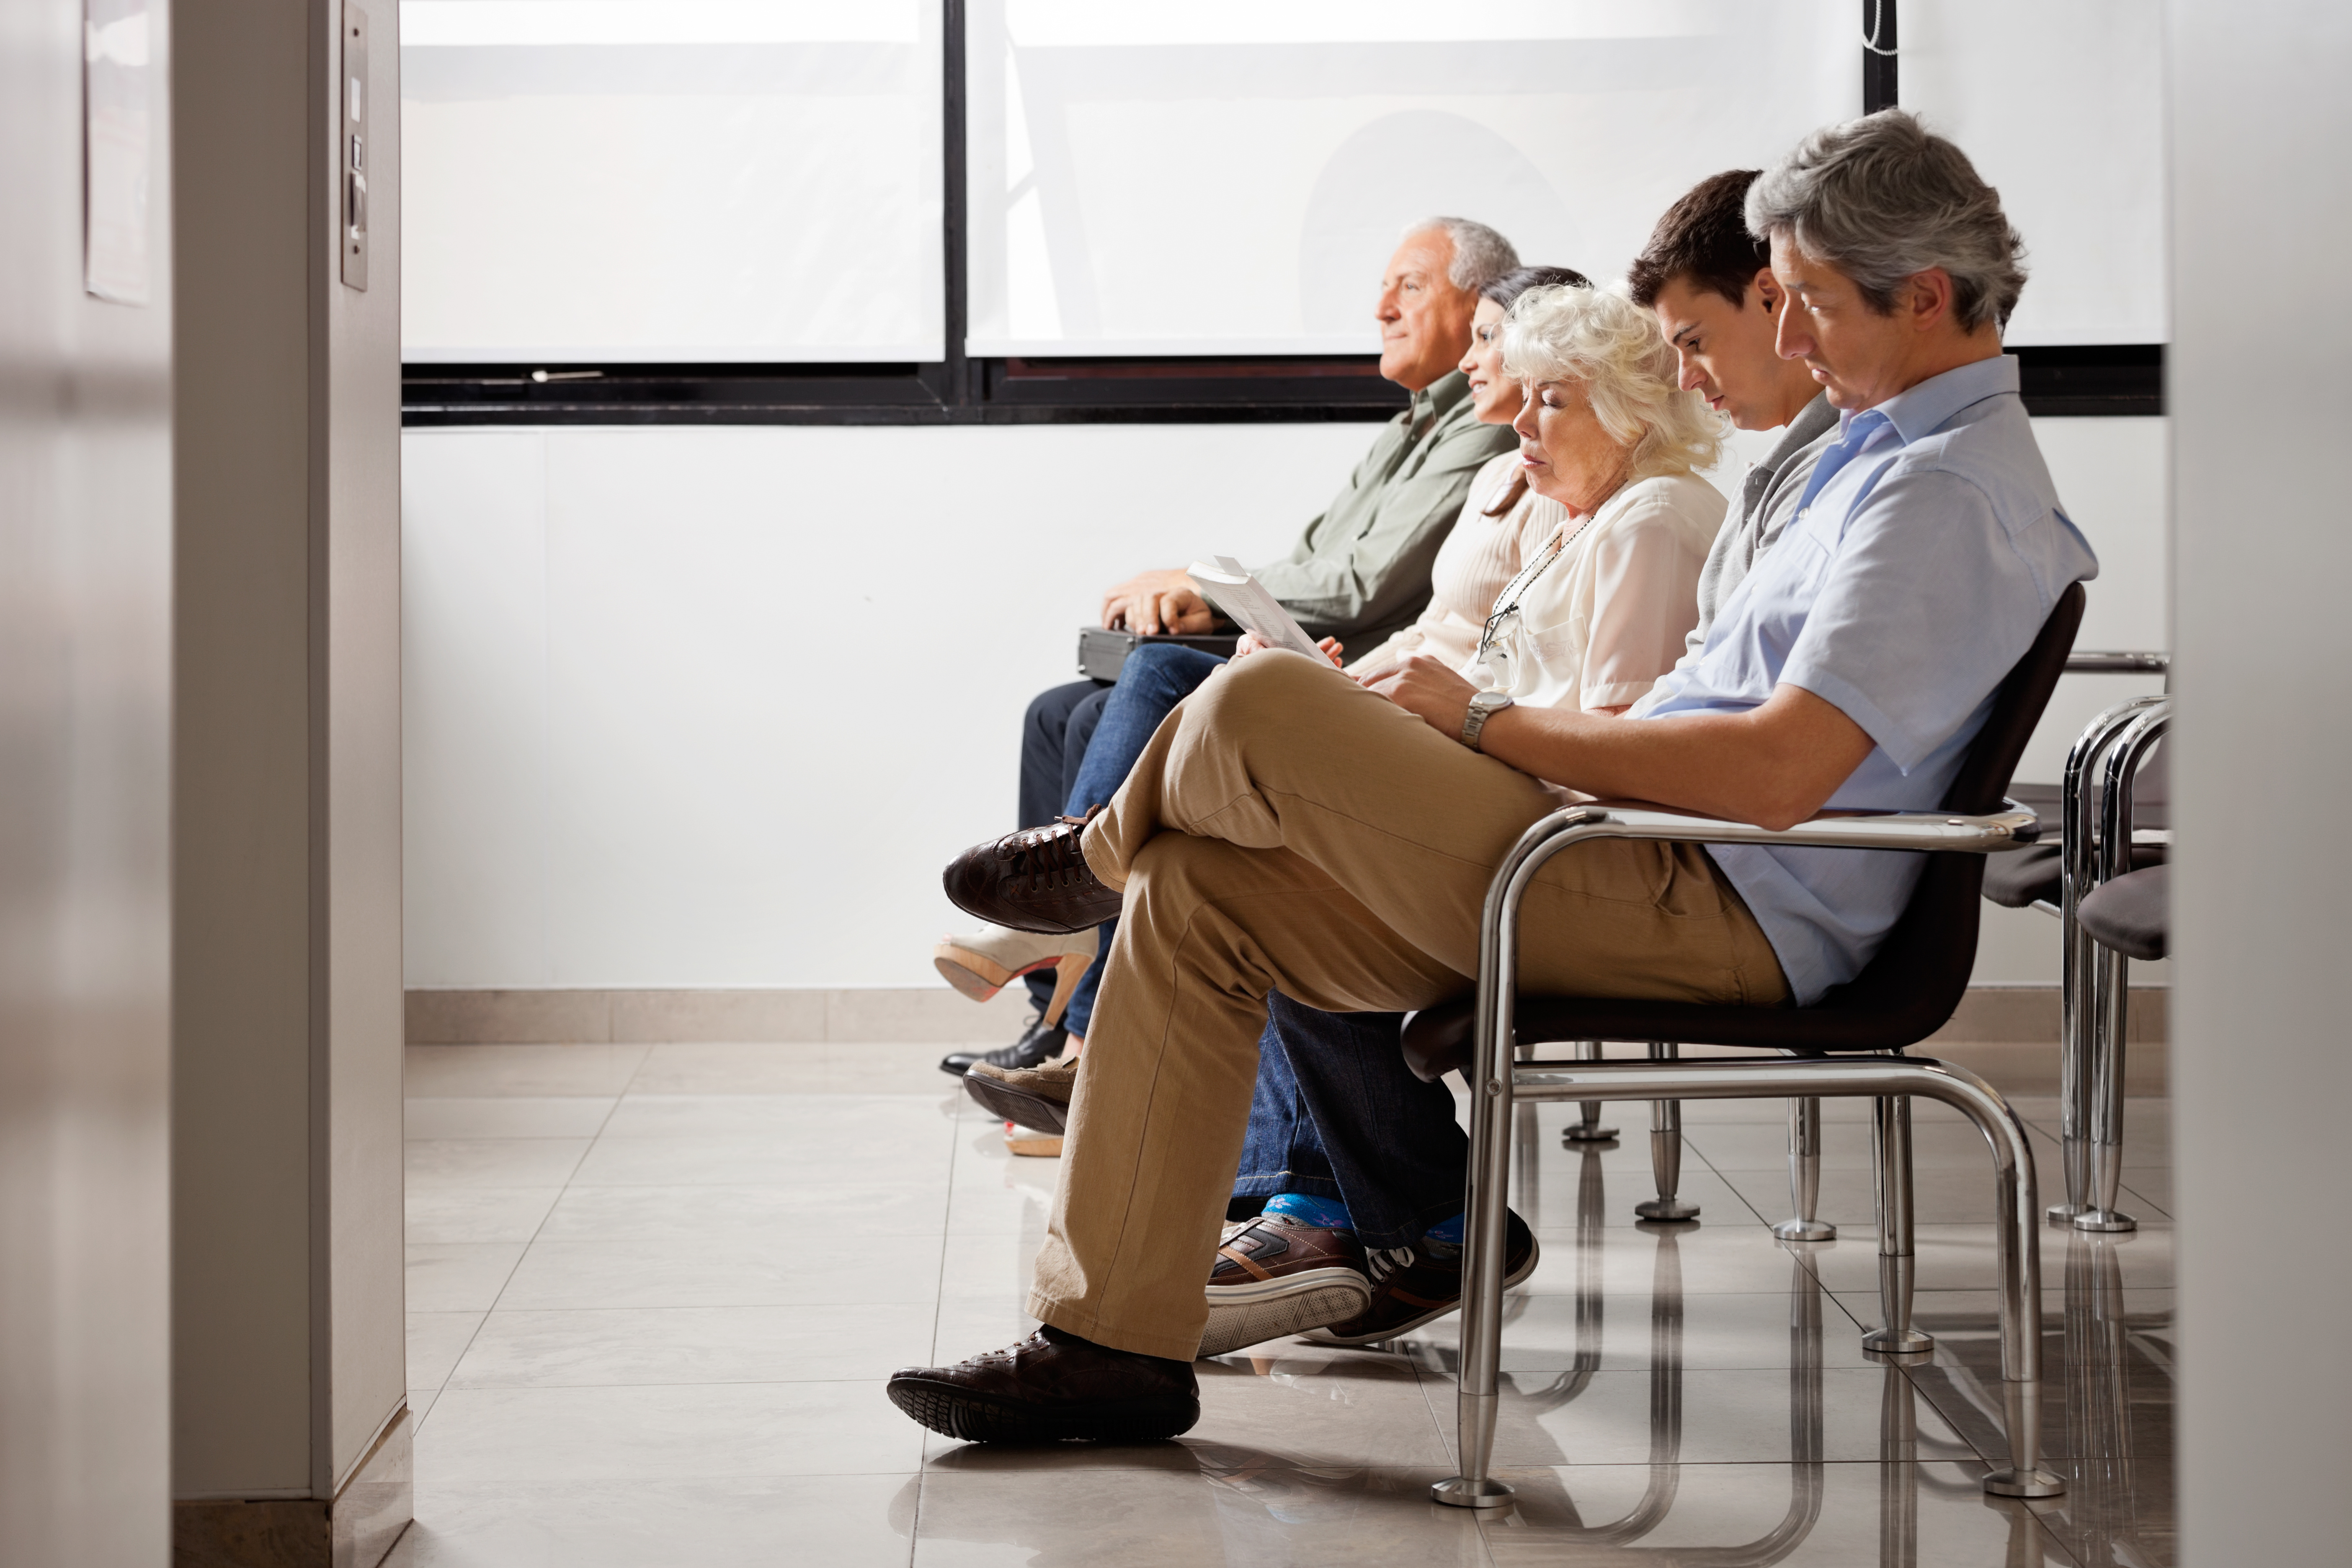 many americans wait too long for needed health care